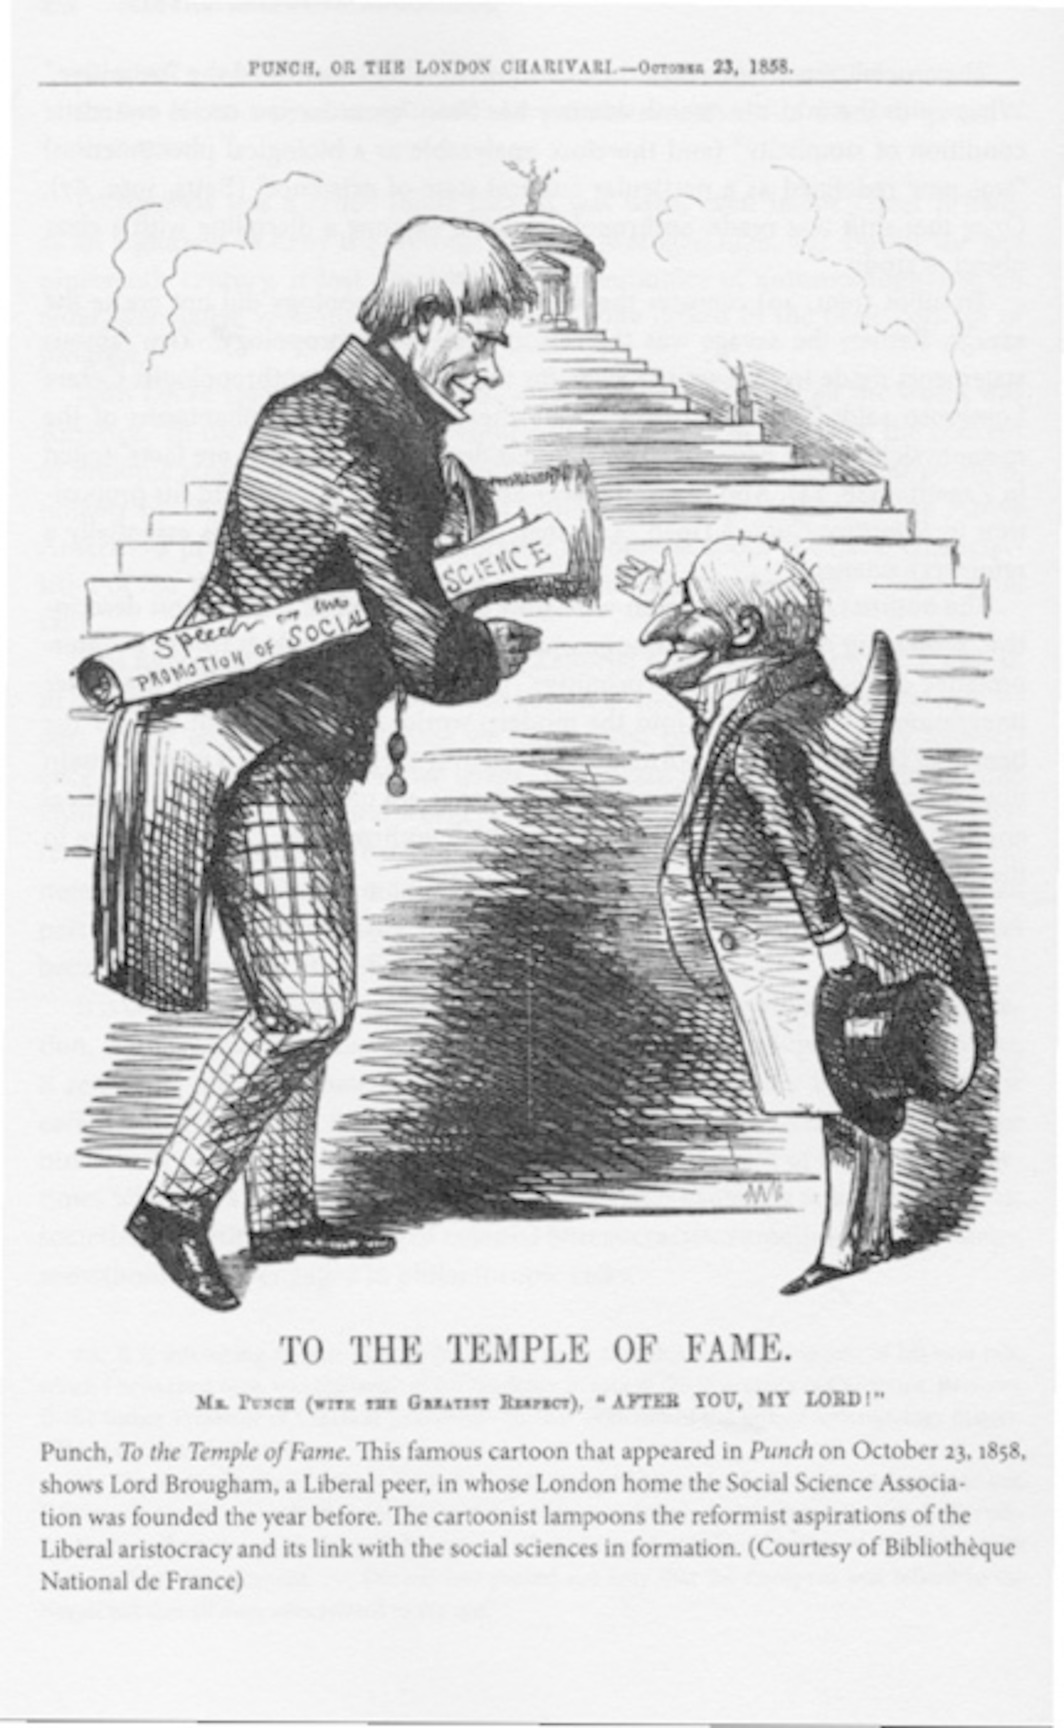 Page from Immanuel Wallerstein, The Modern World System IV: Centrist Liberalism Triumphant, 1789–1914 (University of California Press, 2011). Reproduction of a cartoon from Punch (October 23, 1858).